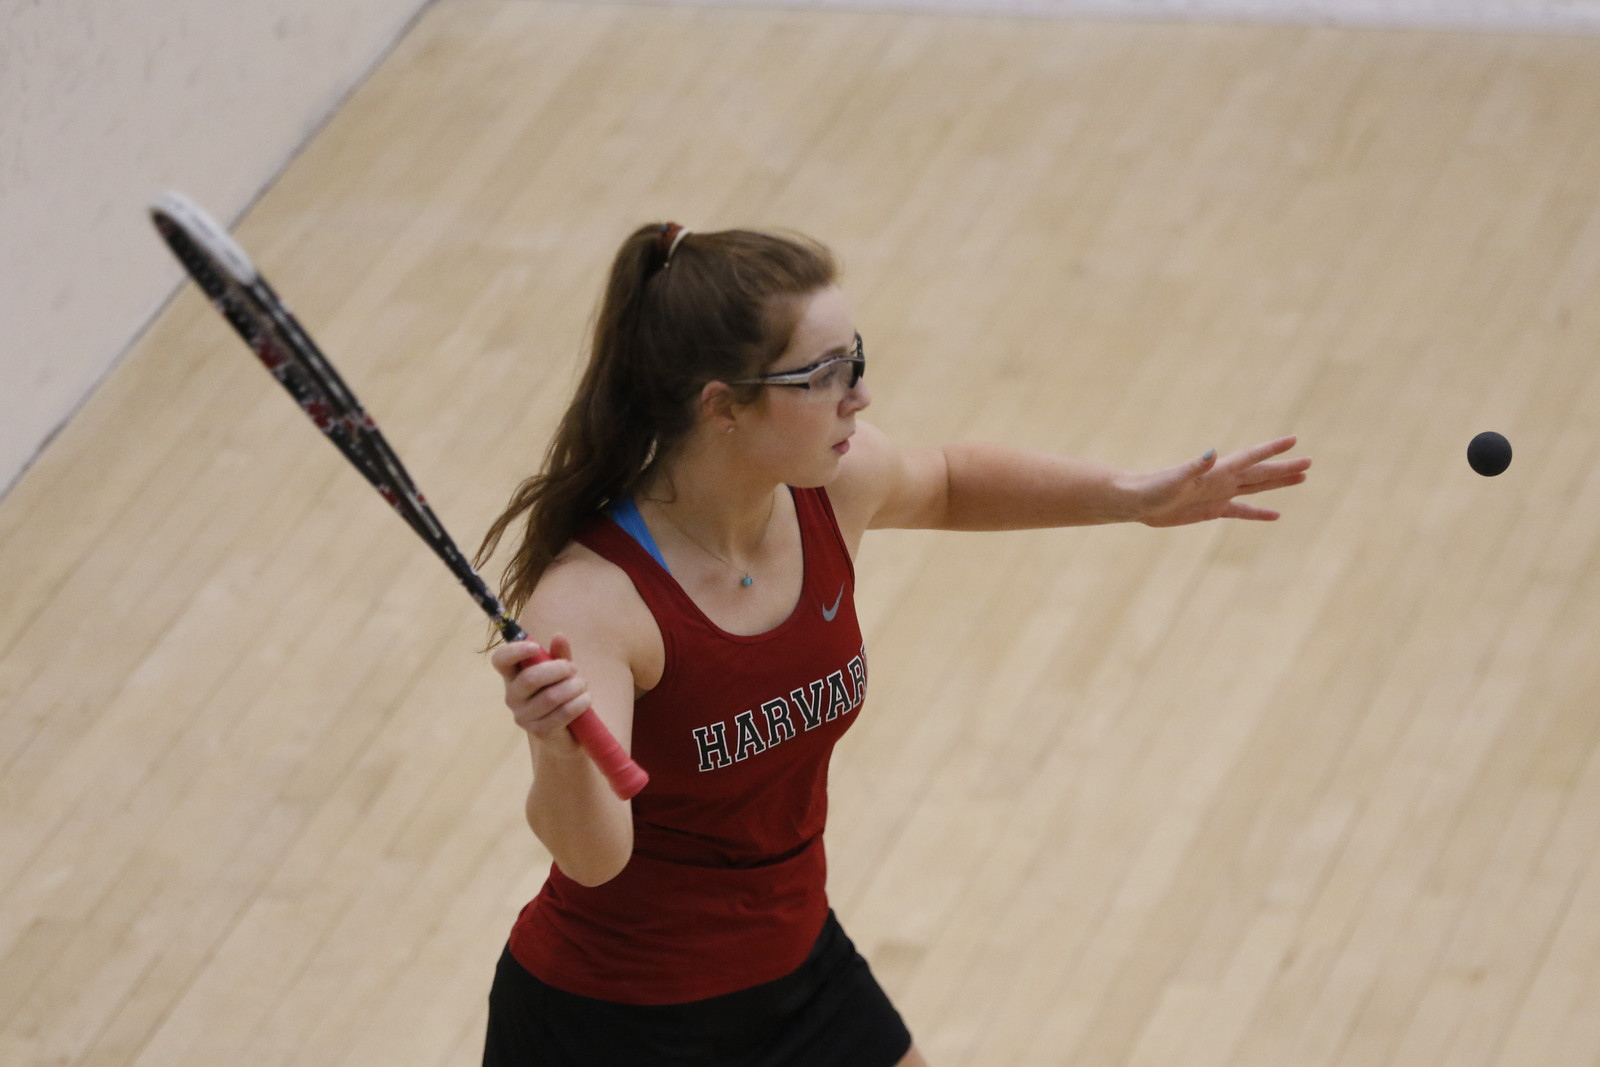 The women's squash team closed out its season with a win over Princeton to take home its sixth-straight national championship.